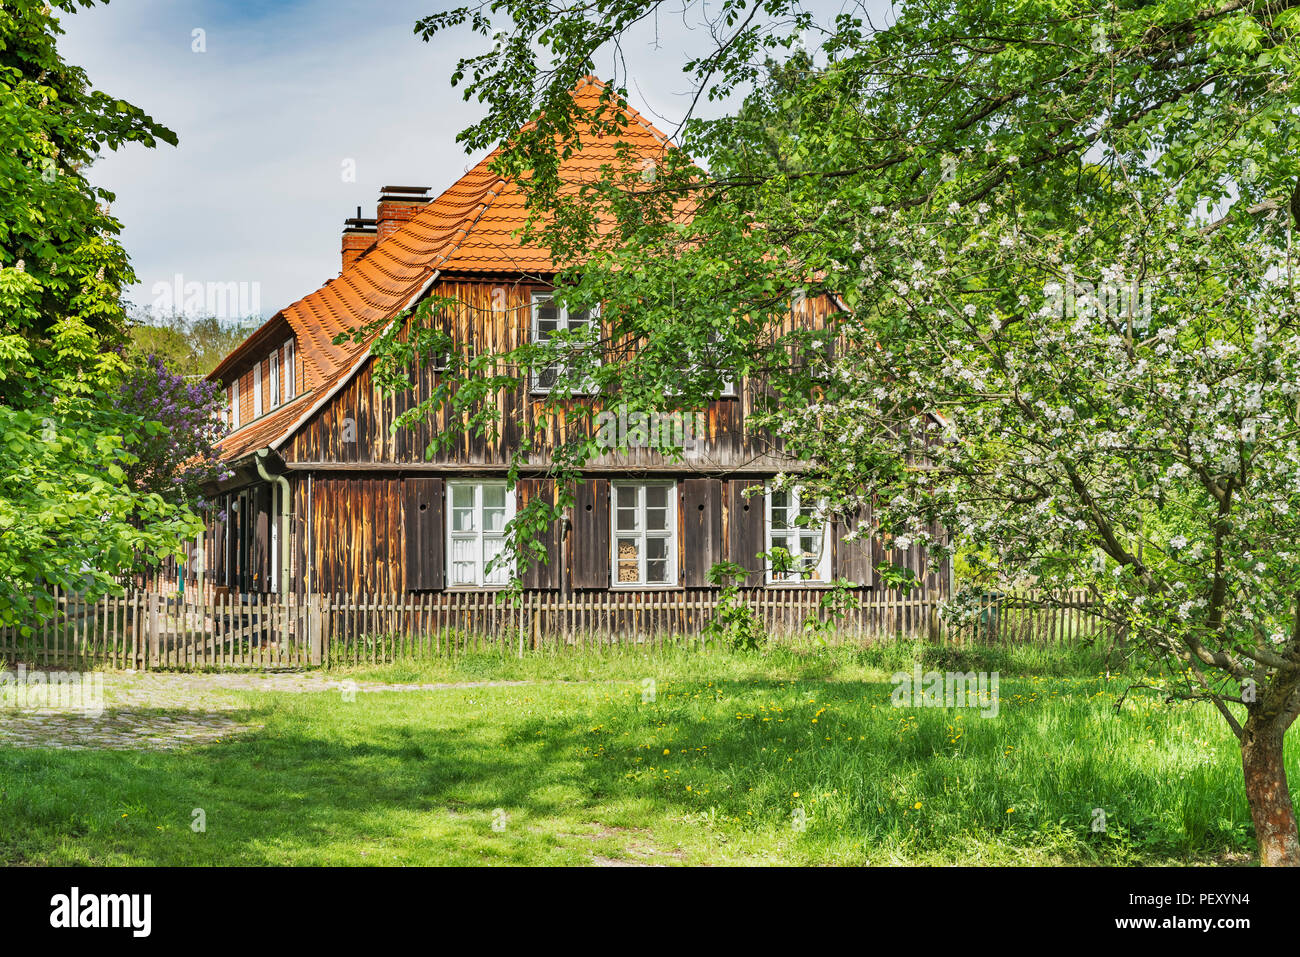 Old House in the museum village Baruther Glashuette. Glashuette is located in the city Baruth / Mark, district Teltow-Flaeming, Brandenburg, Germany - Stock Image